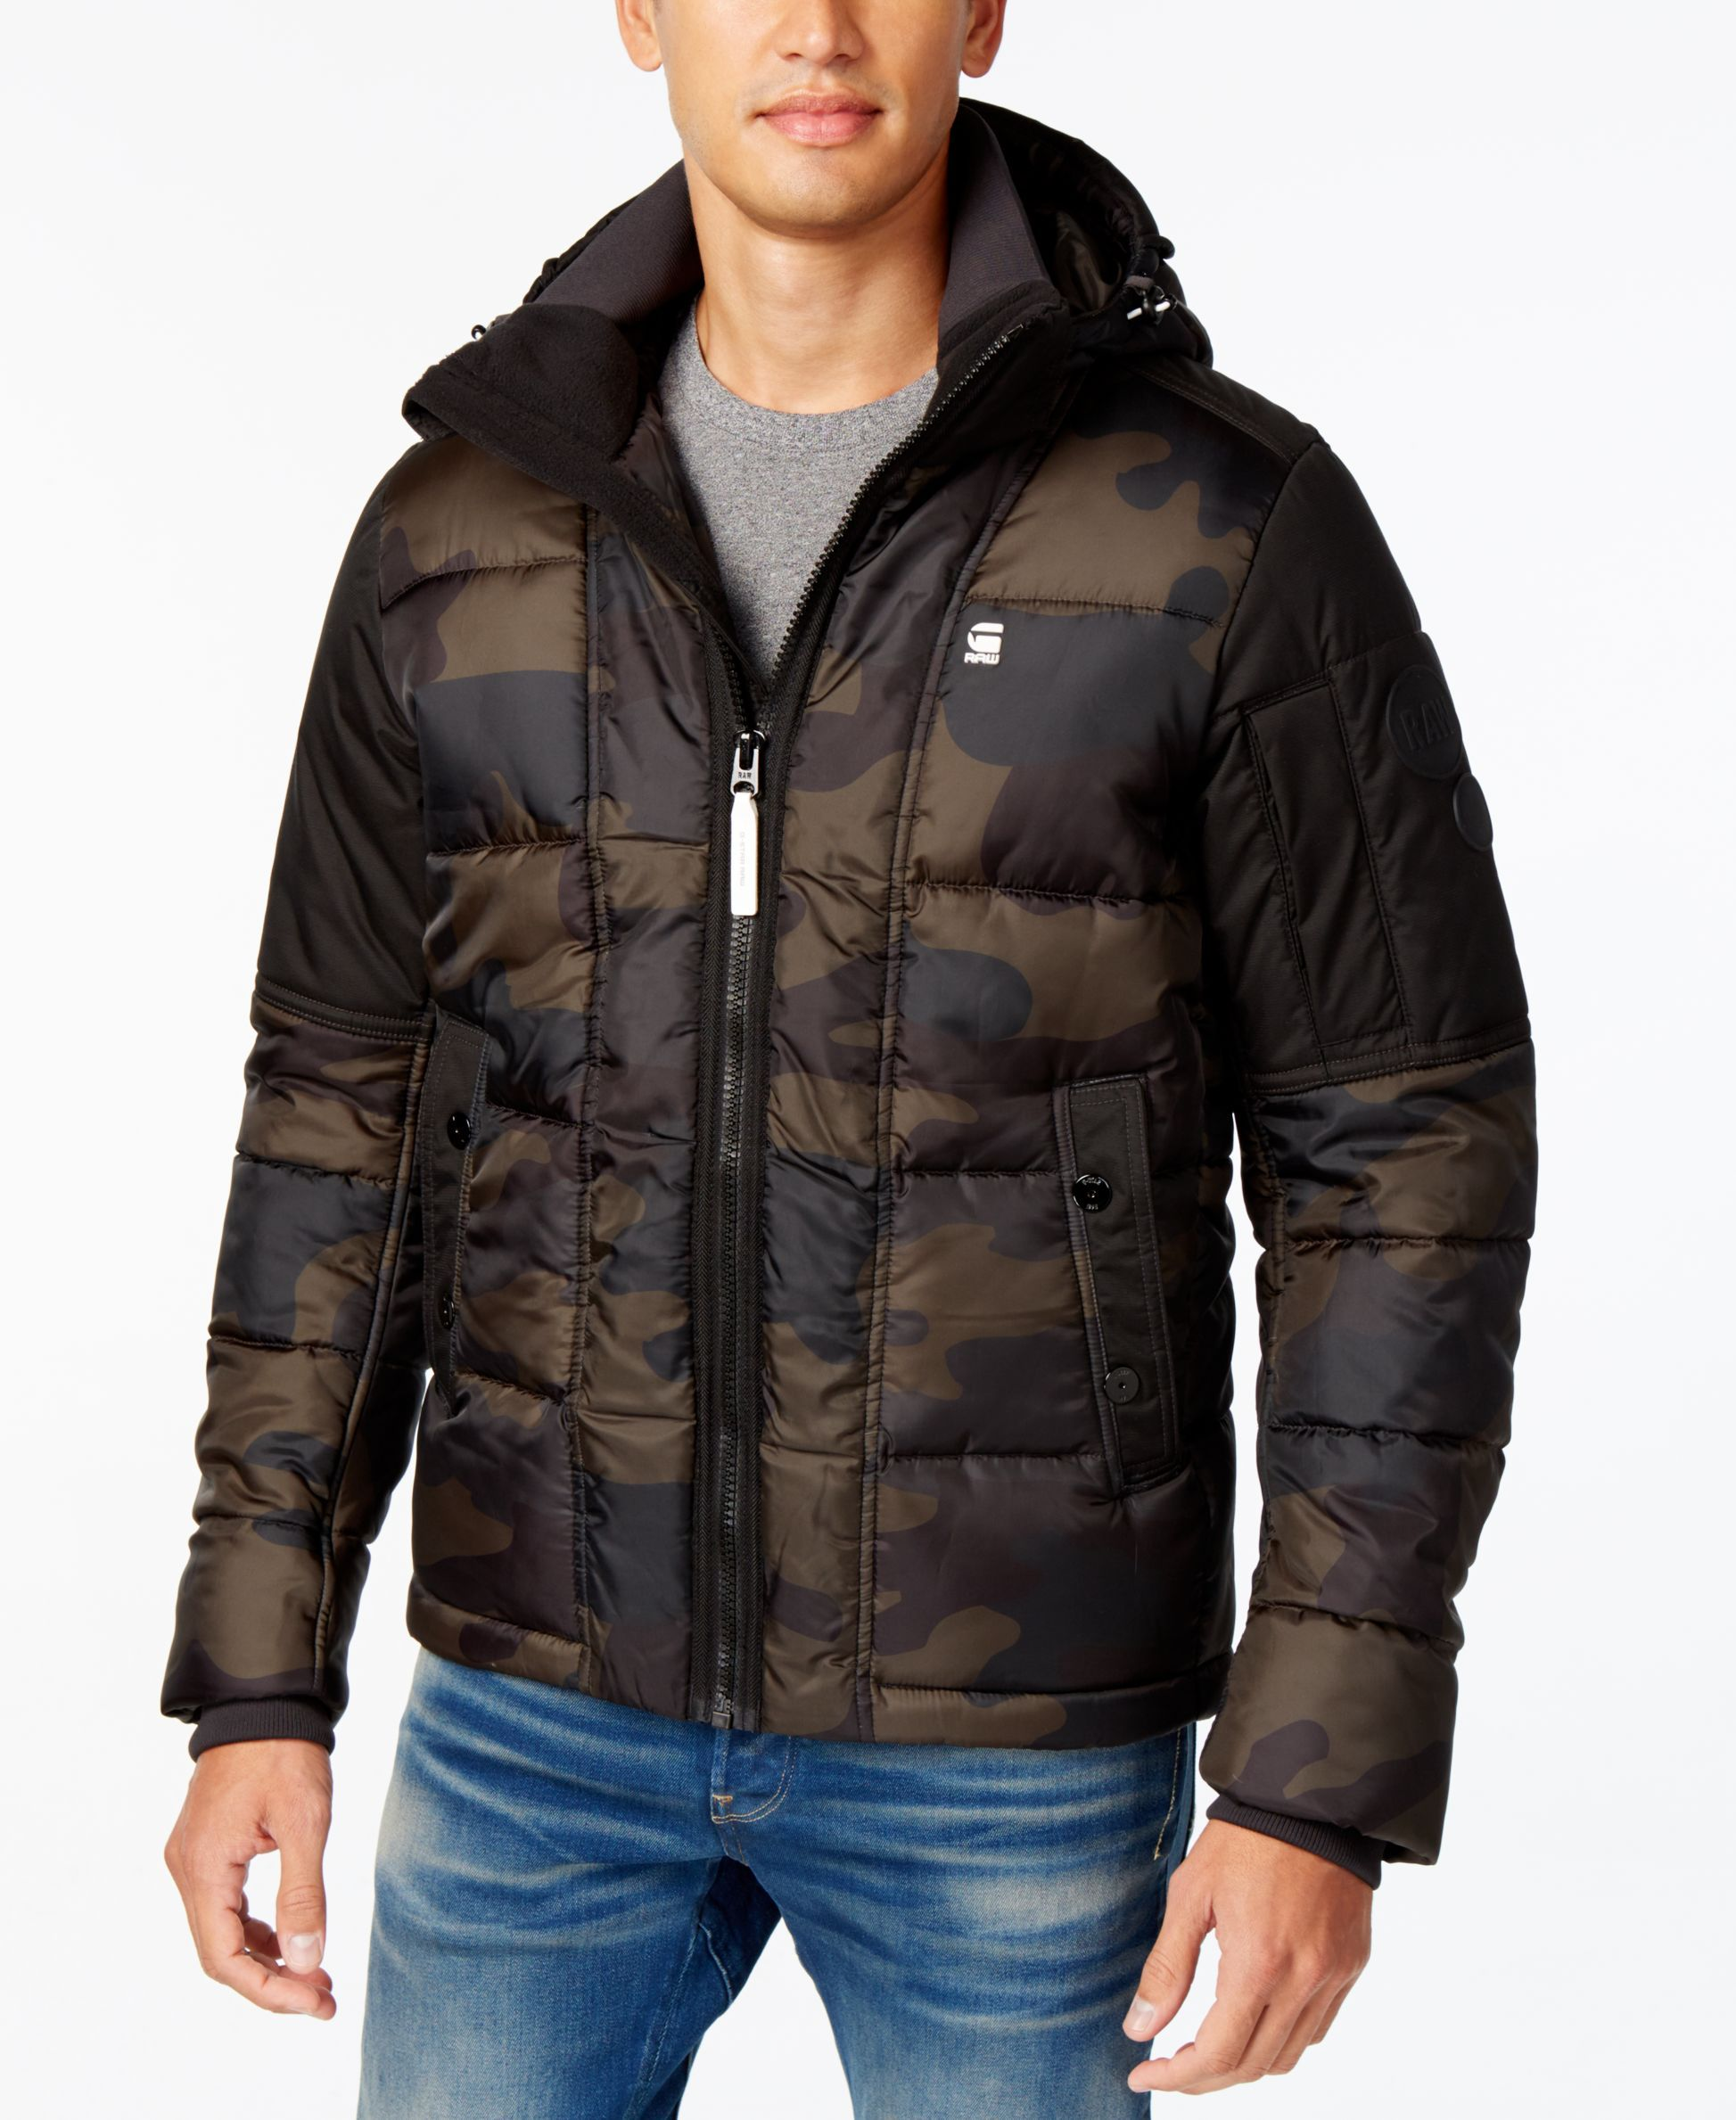 2d635ef0f23d9 G-Star Raw Men's Whistler Hooded Camo Jacket | Products | Camo ...